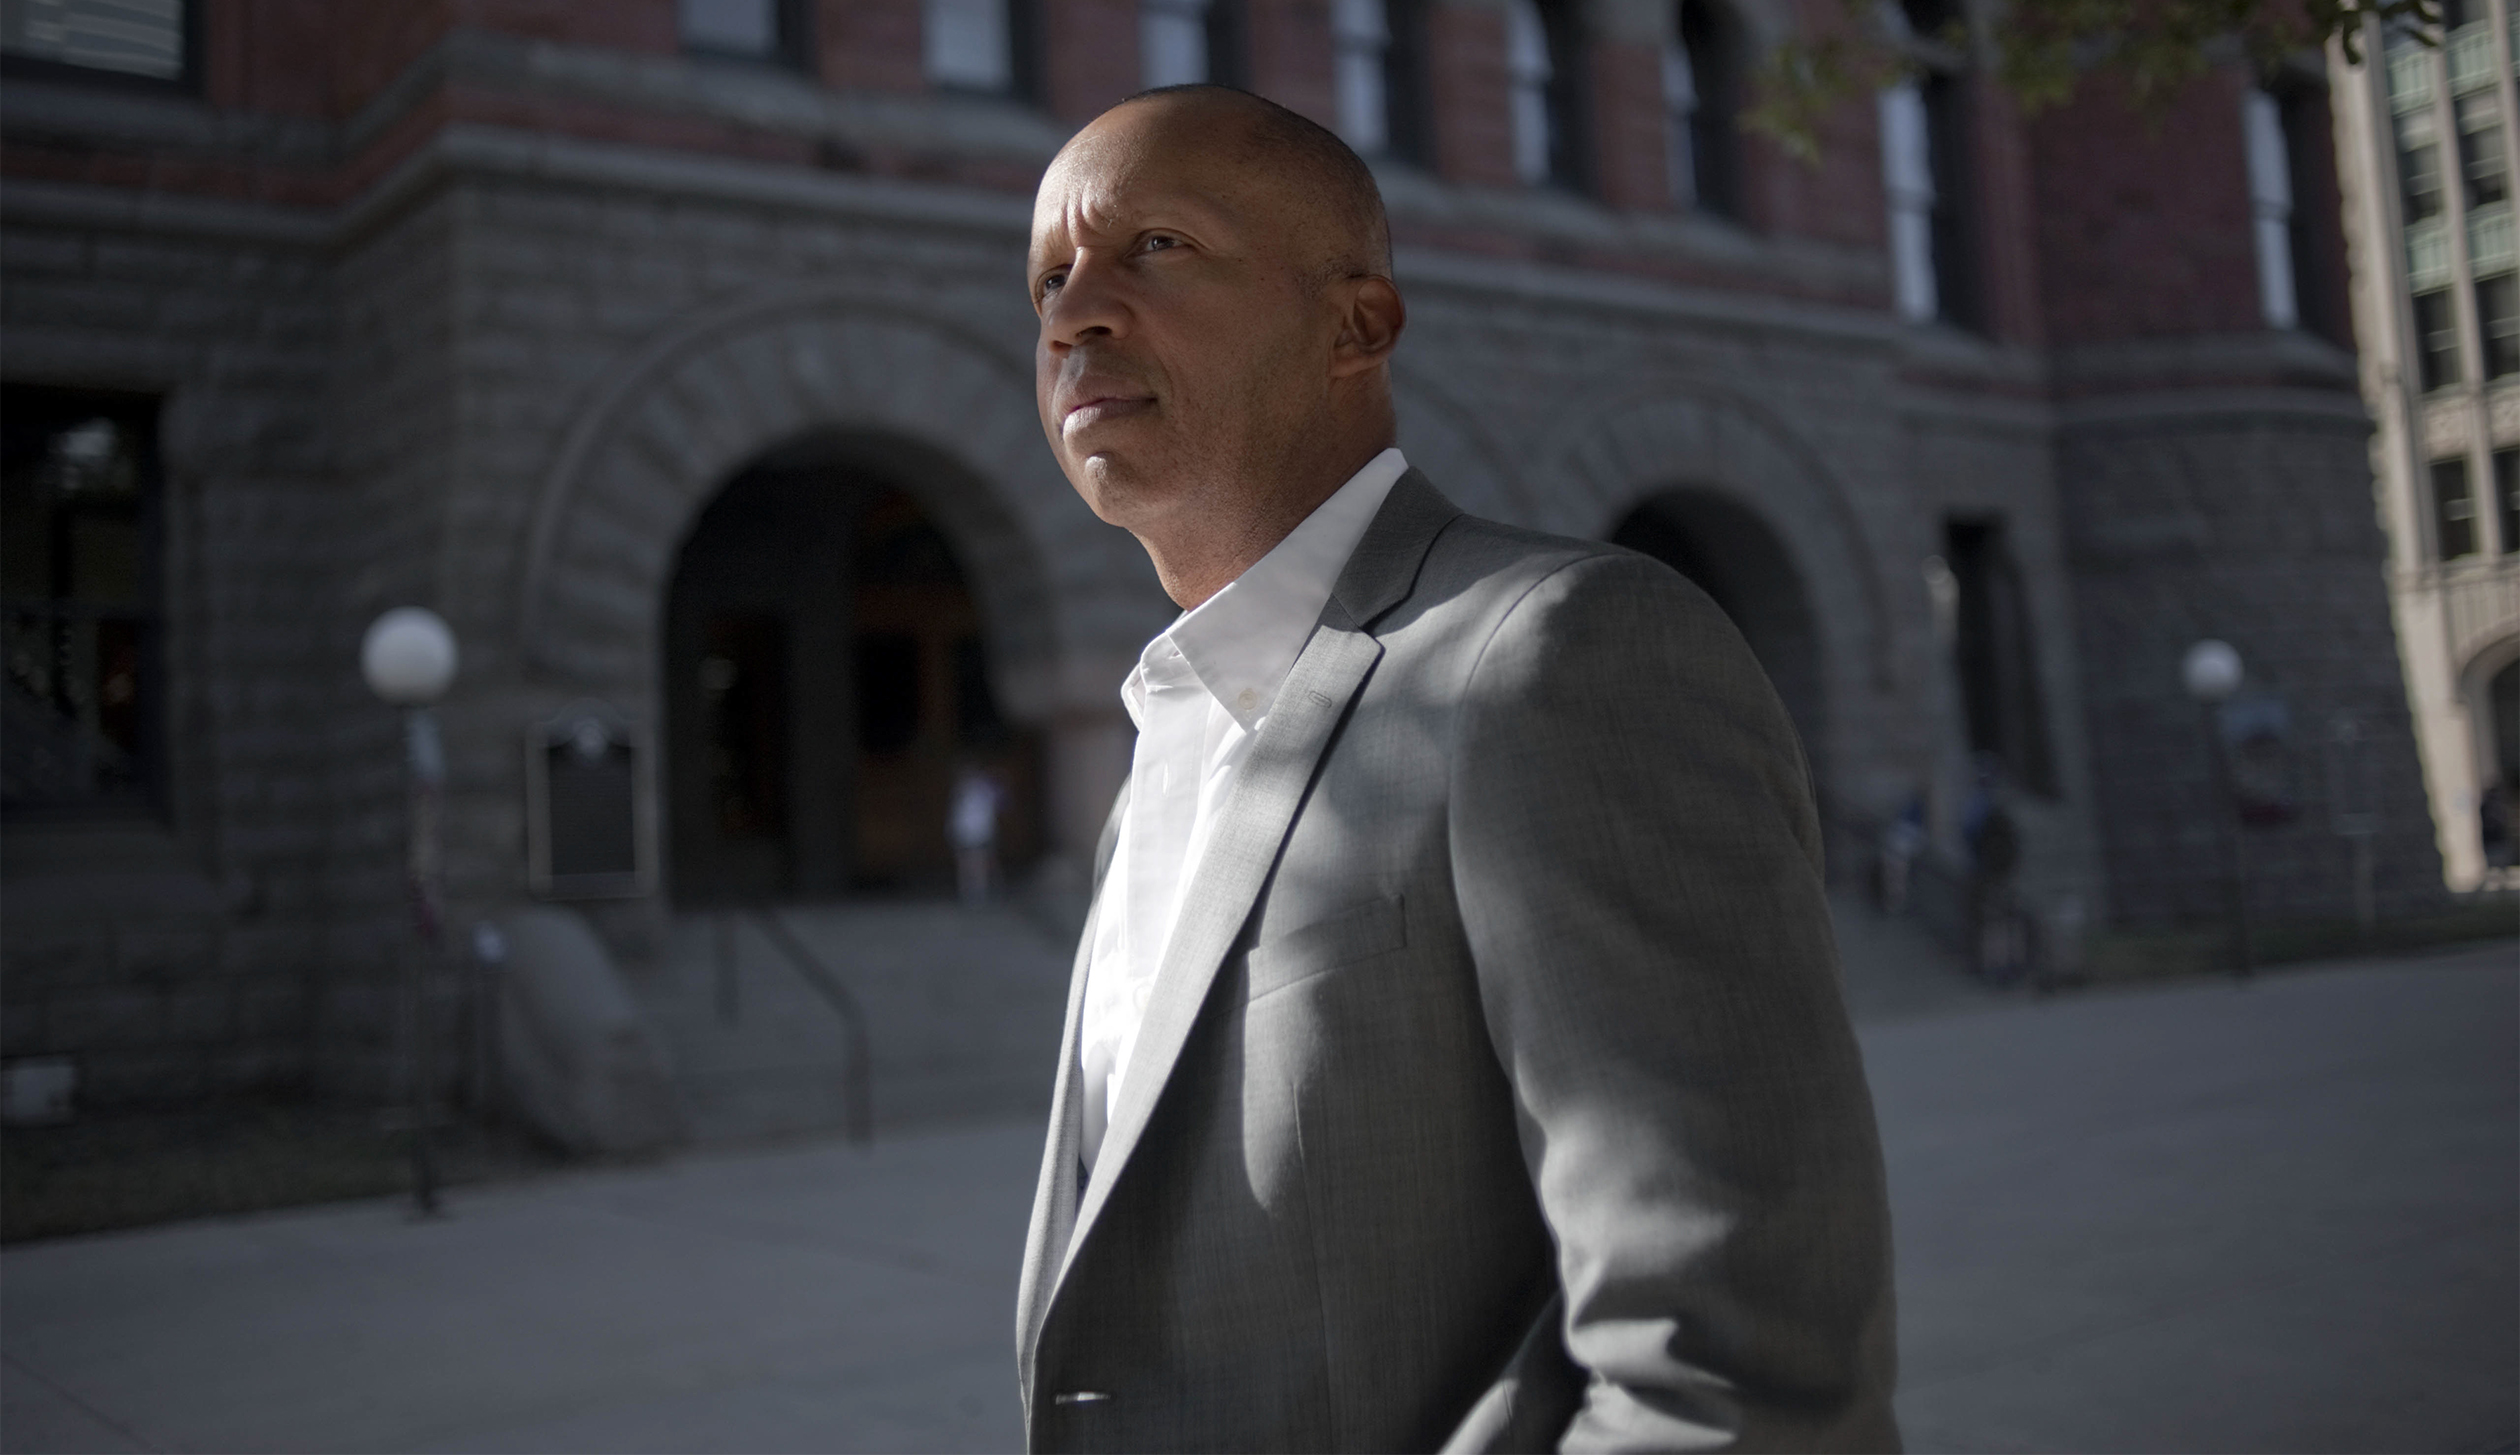 Bryan Stevenson, who founded and runs the Equal Justice Initiative, in front of the former courthouse where the 1910 lynching of Allen Brooks, a black man, began in Dallas.